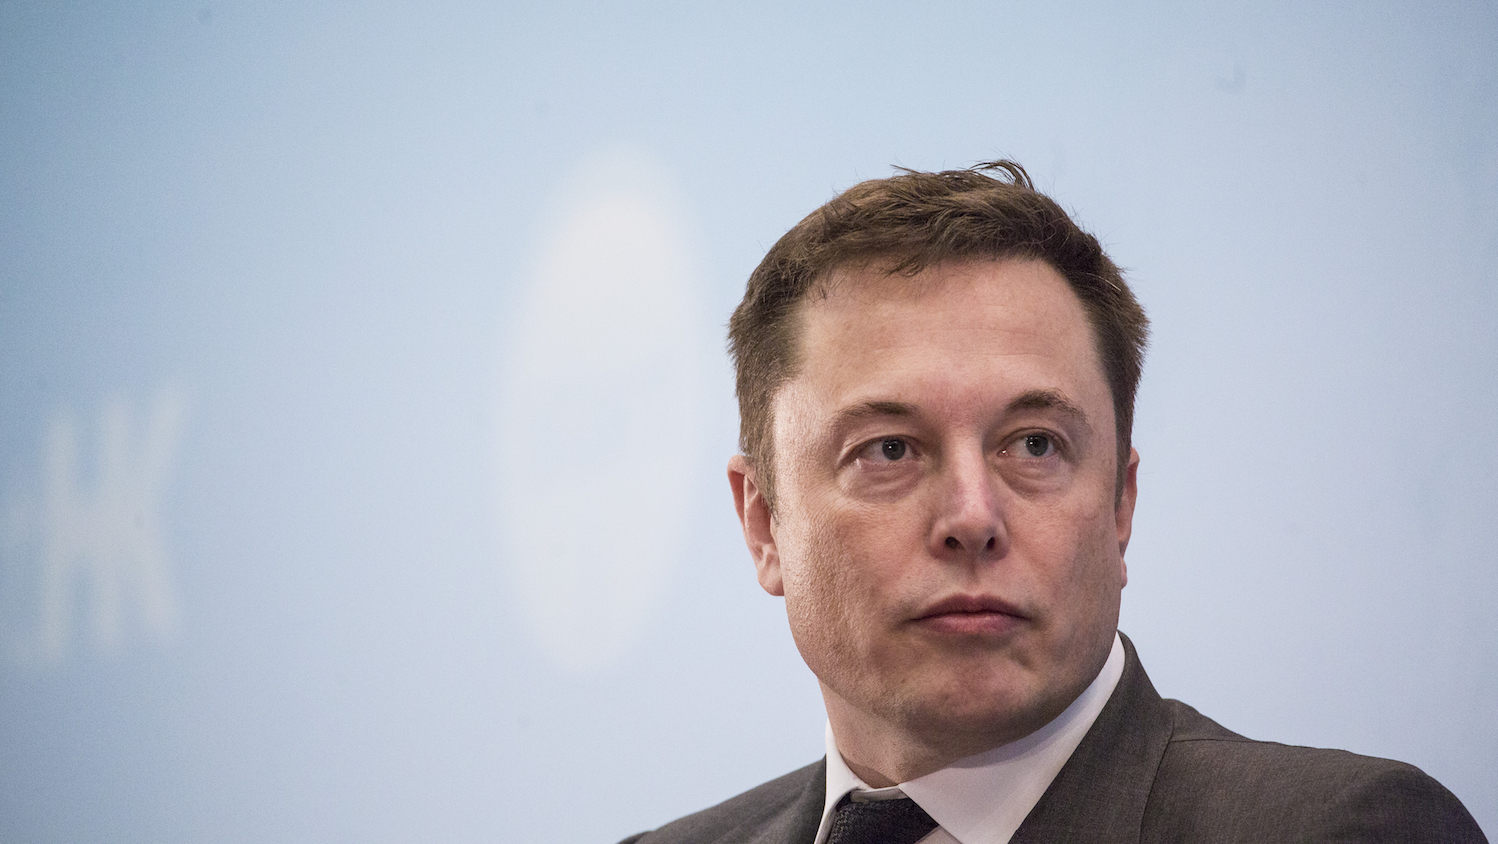 Elon Musk Plans to Start Candy Company